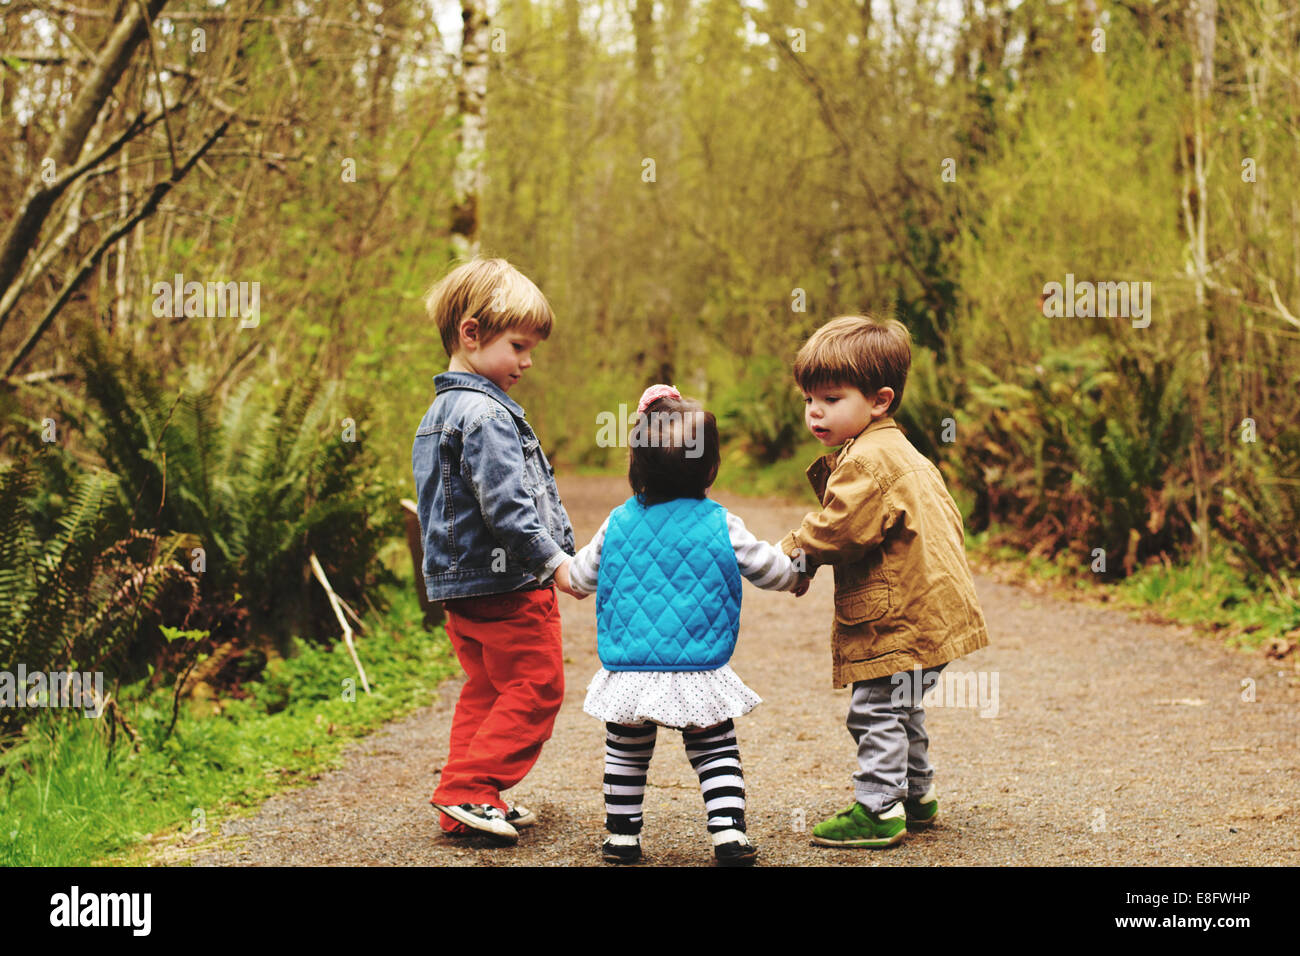 Children (2-3, 4-5) playing outdoors - Stock Image